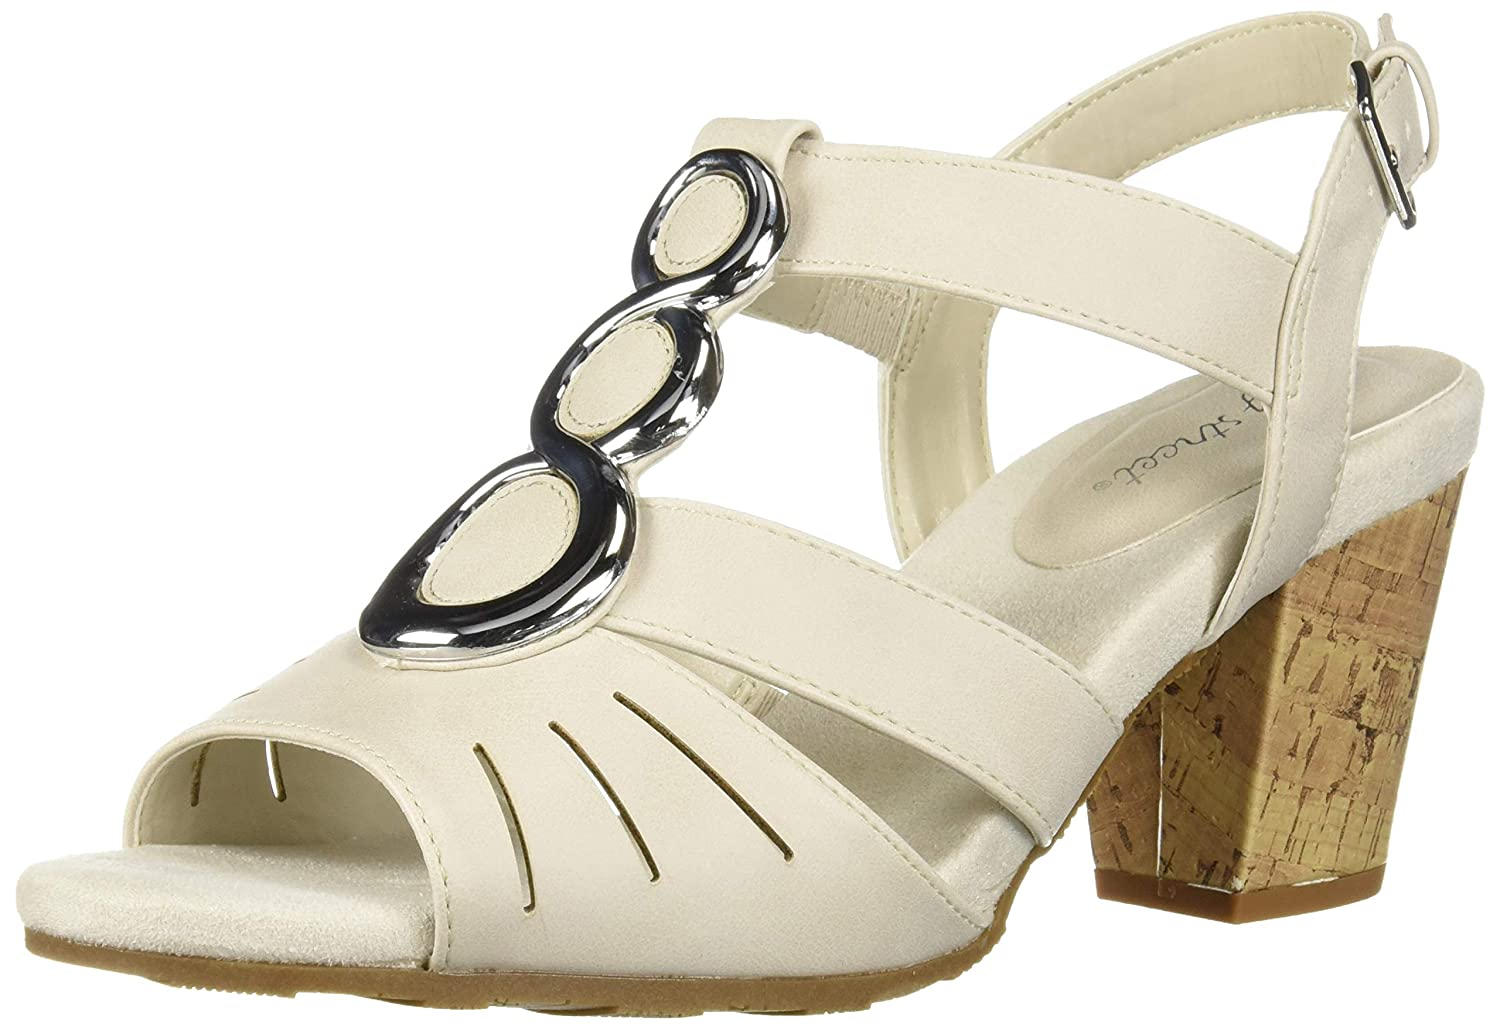 Retro Vintage Style Wide Shoes Easy Street Womens Casey Dress Casual Sandal Heeled $41.79 AT vintagedancer.com